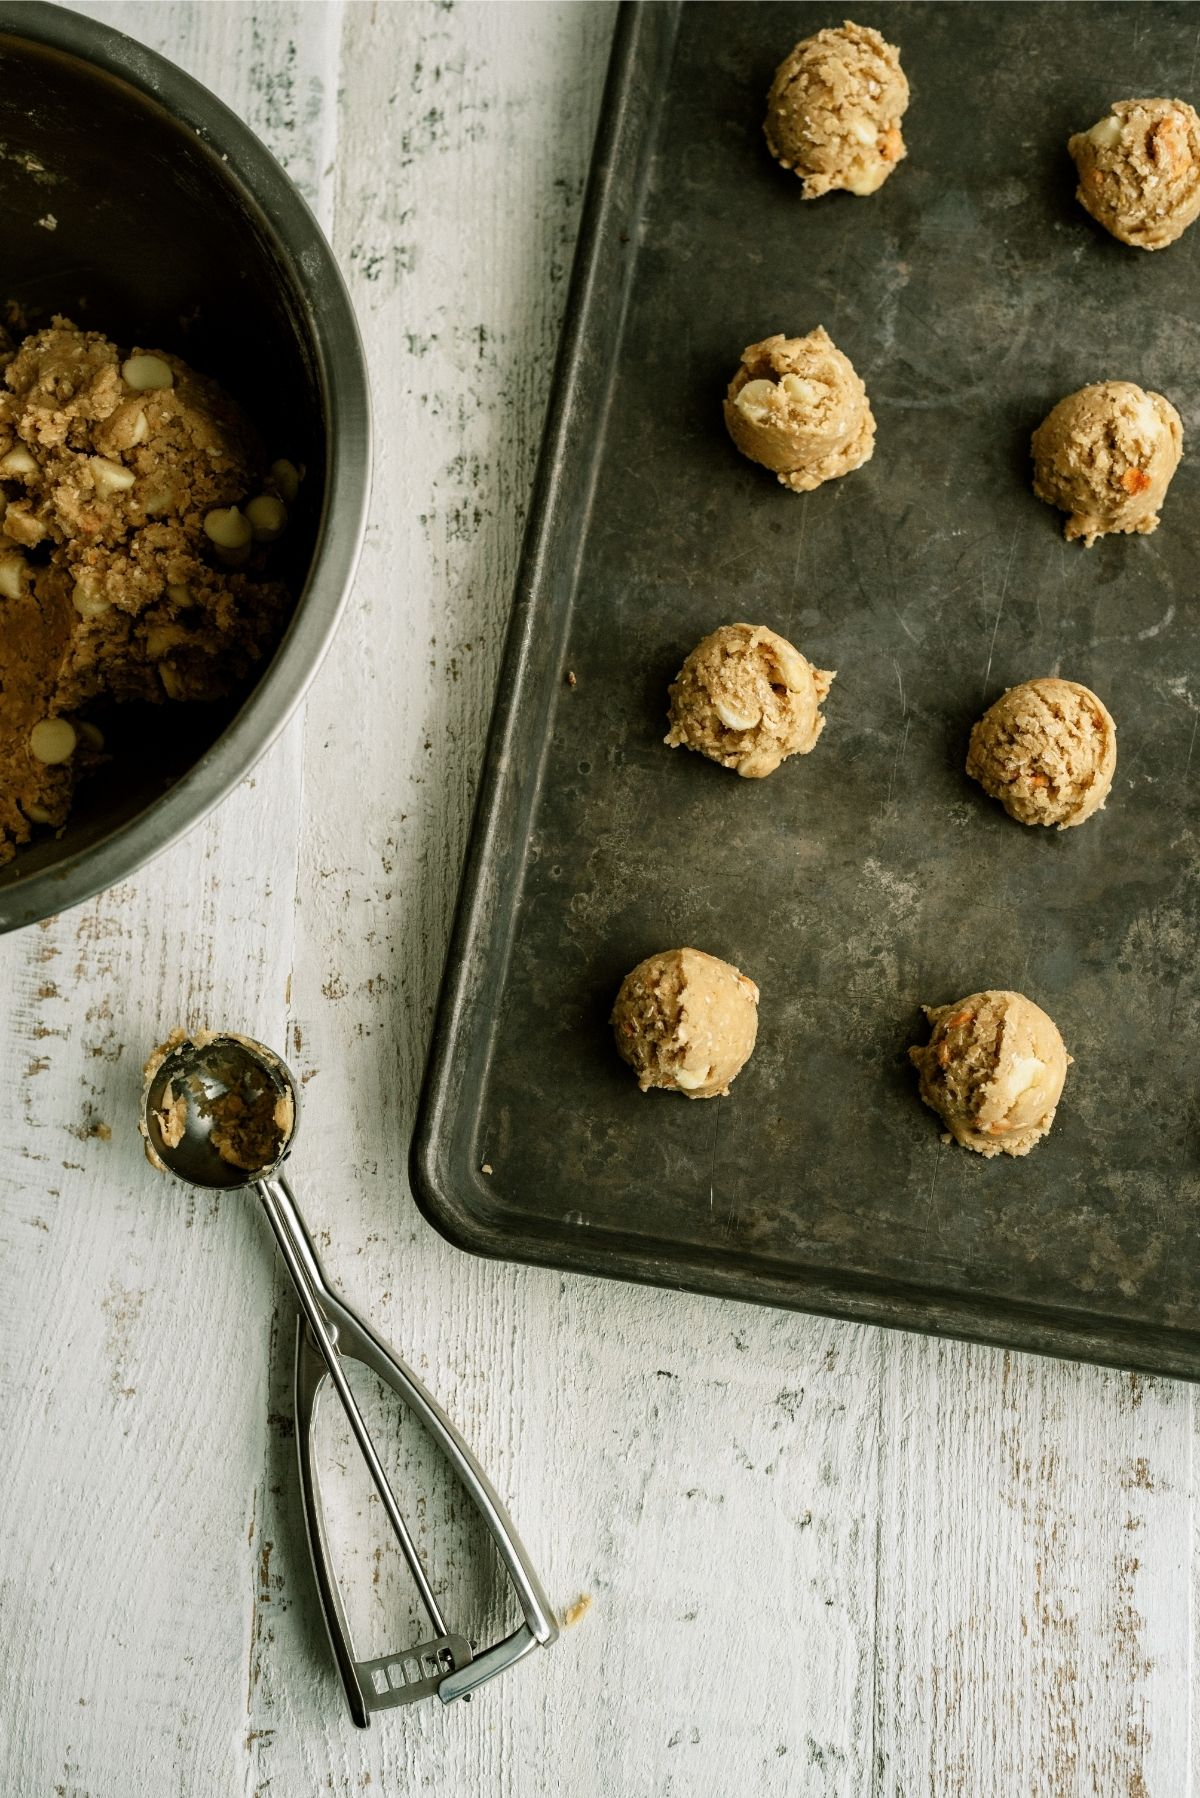 Cookie dough balls on cookie sheet ready to bake